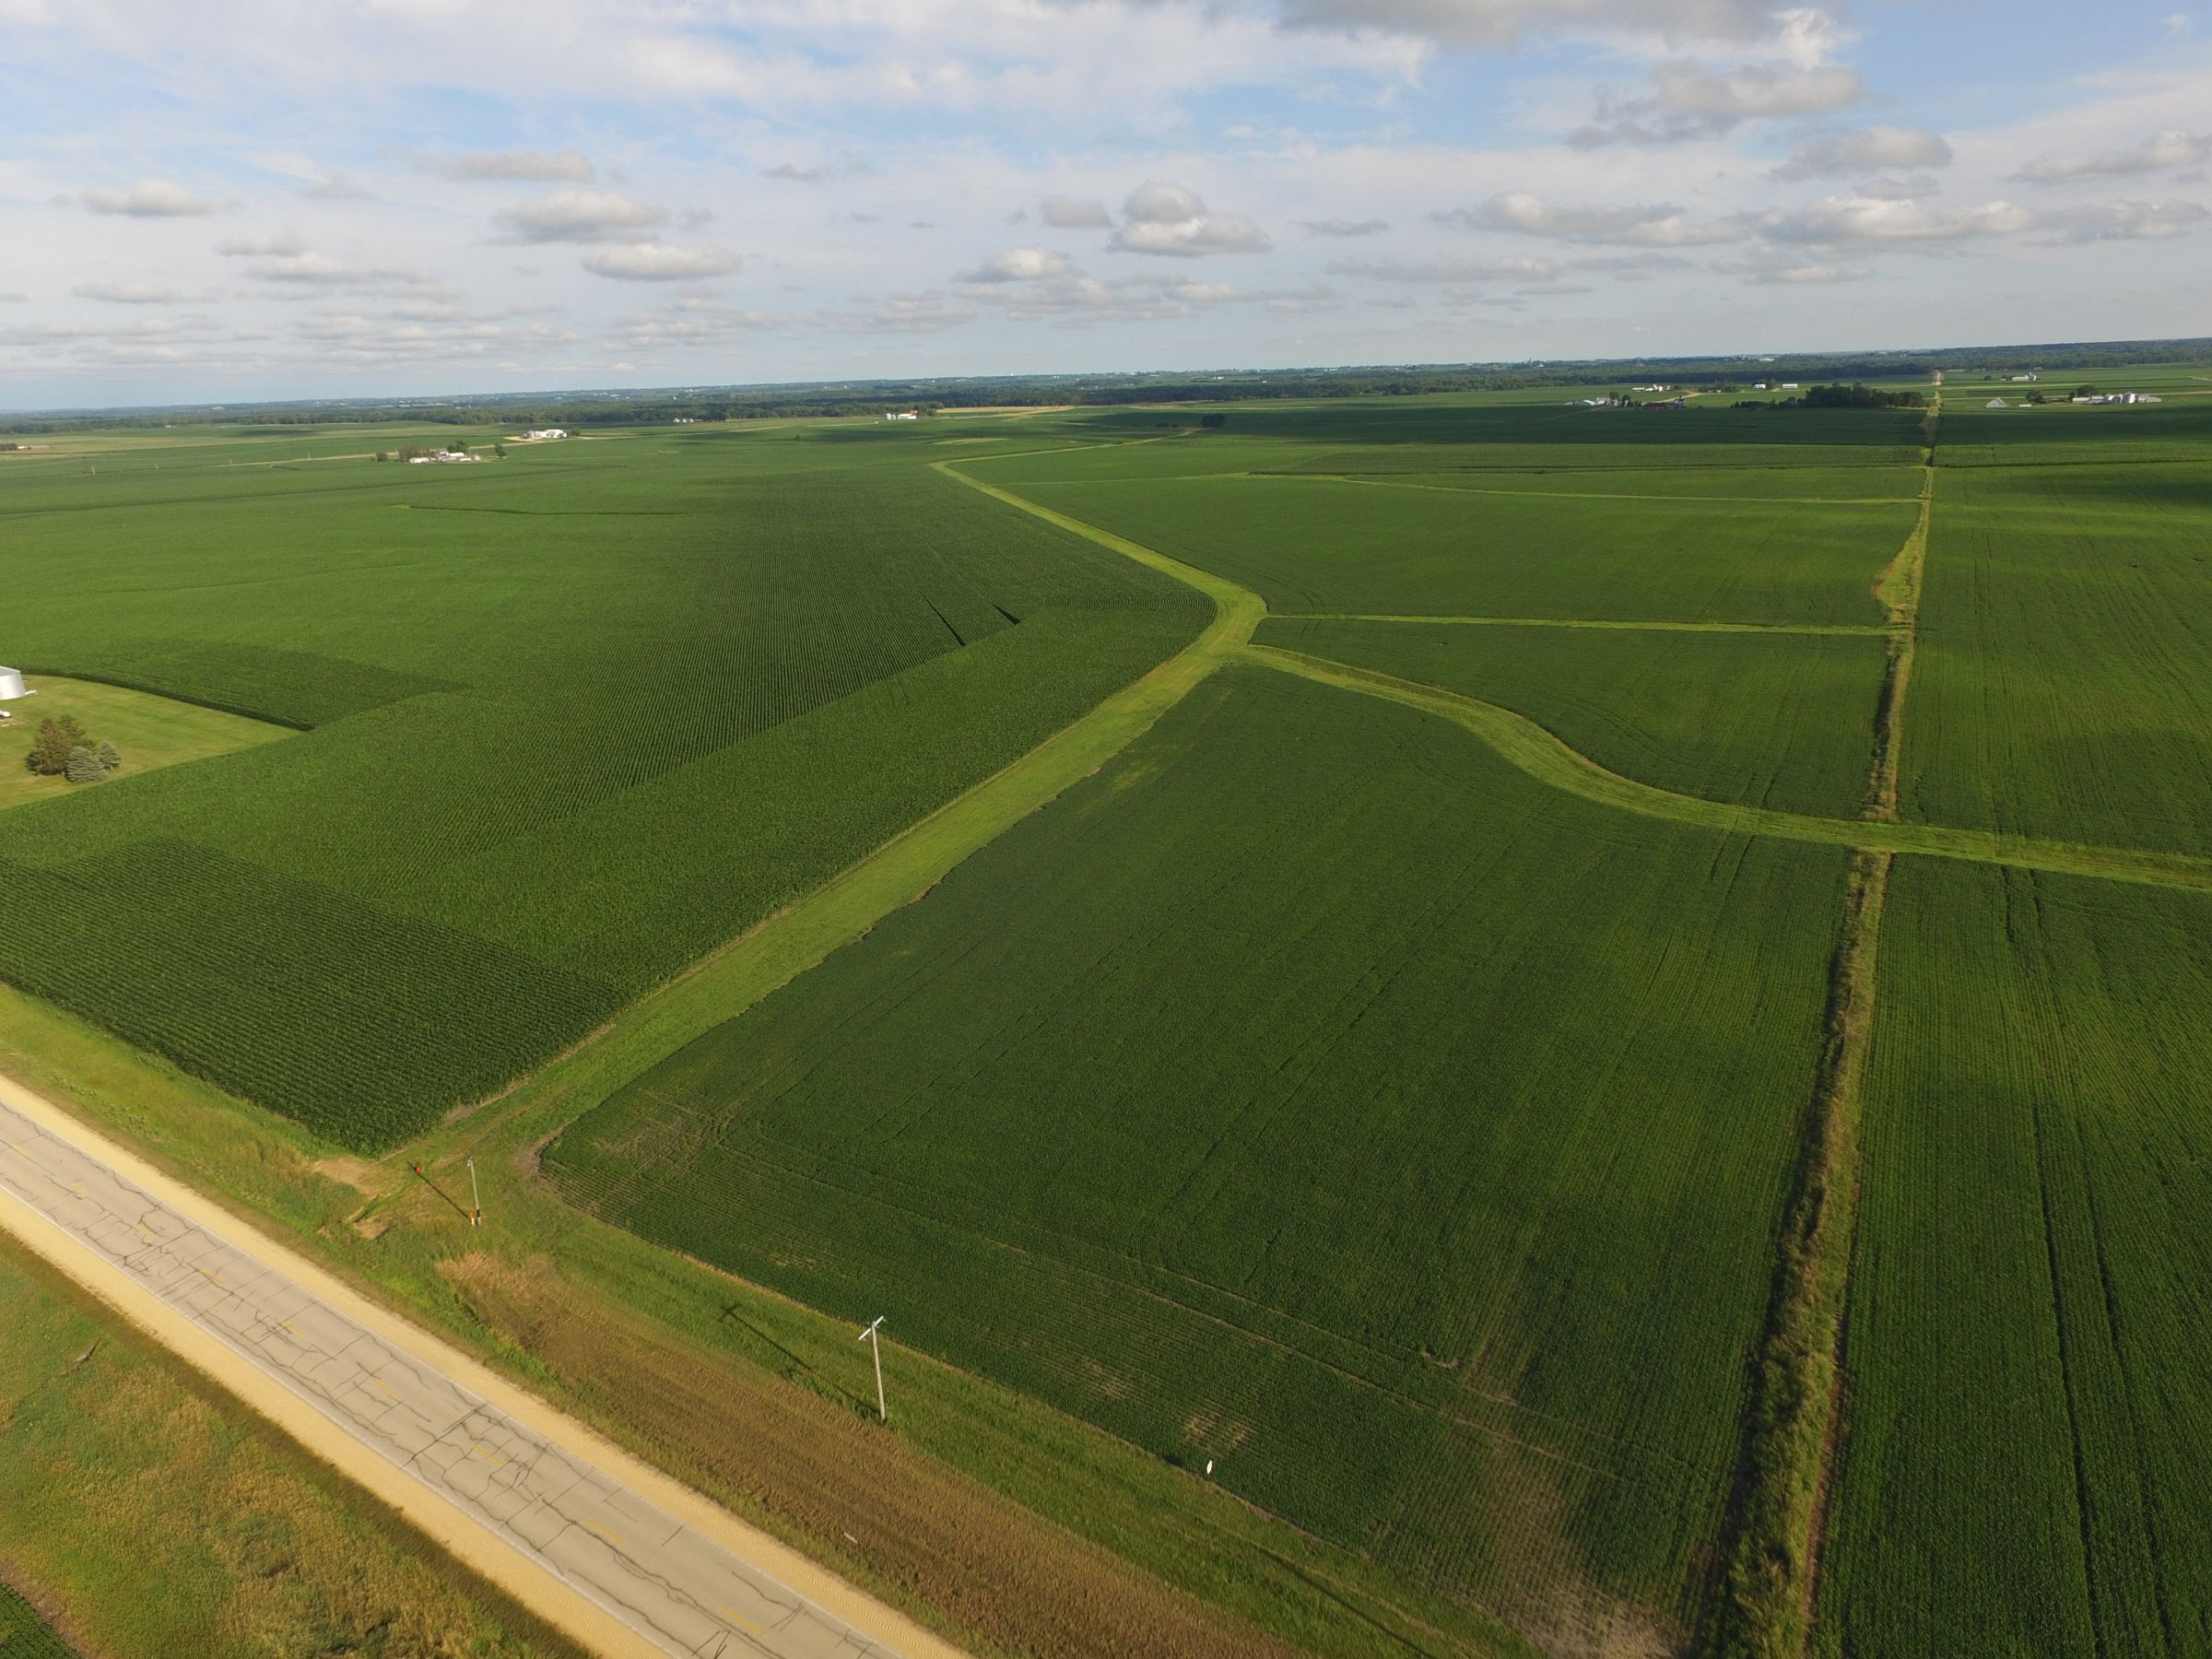 auctions-land-clinton-county-iowa-210-acres-listing-number-15628-4-2021-07-12-143512.JPG